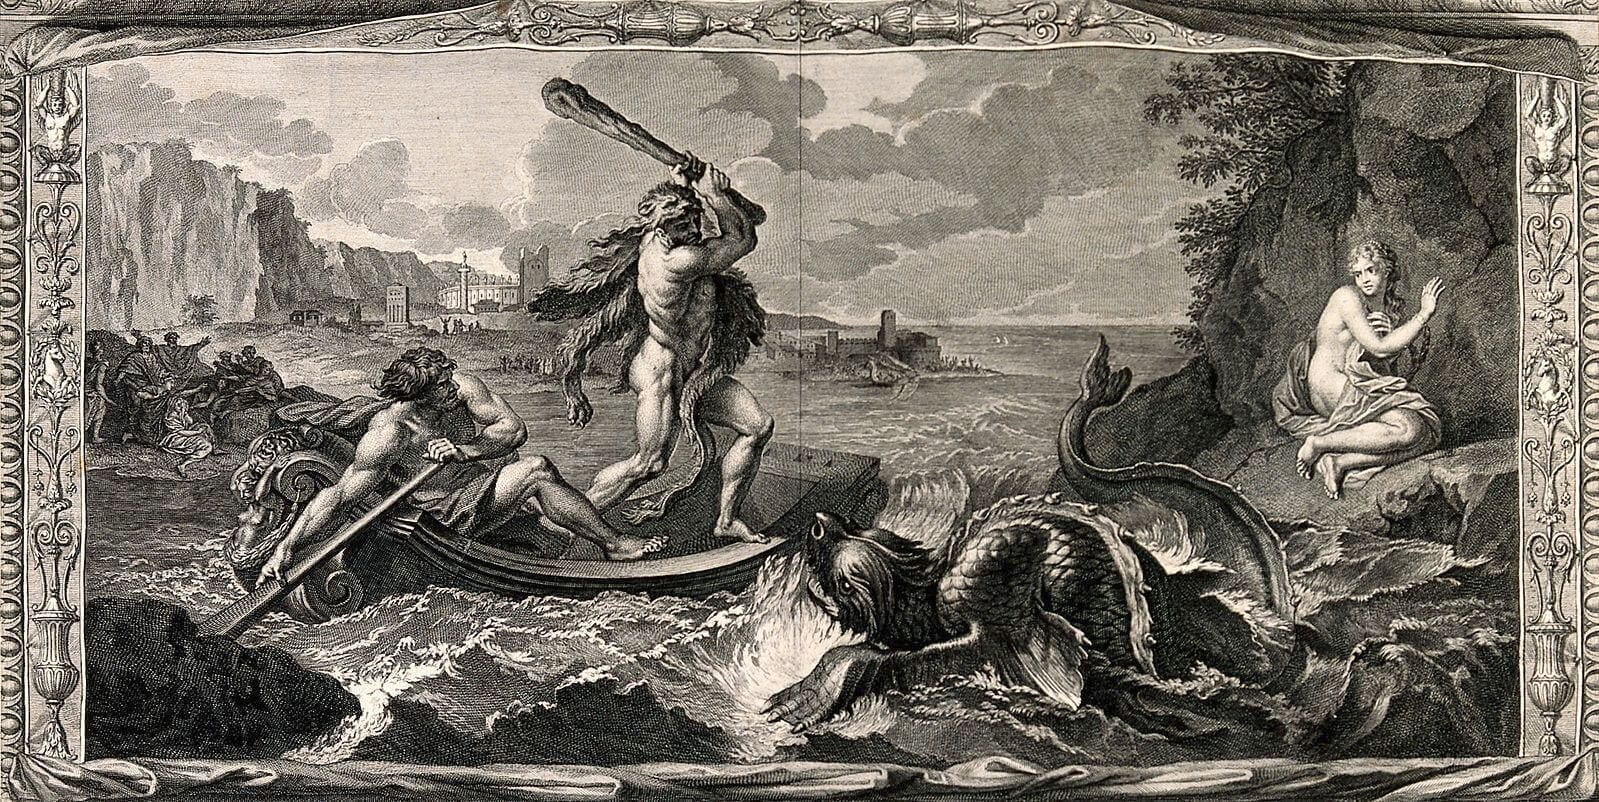 image of hercules fighting a sea monster for hr software blog post